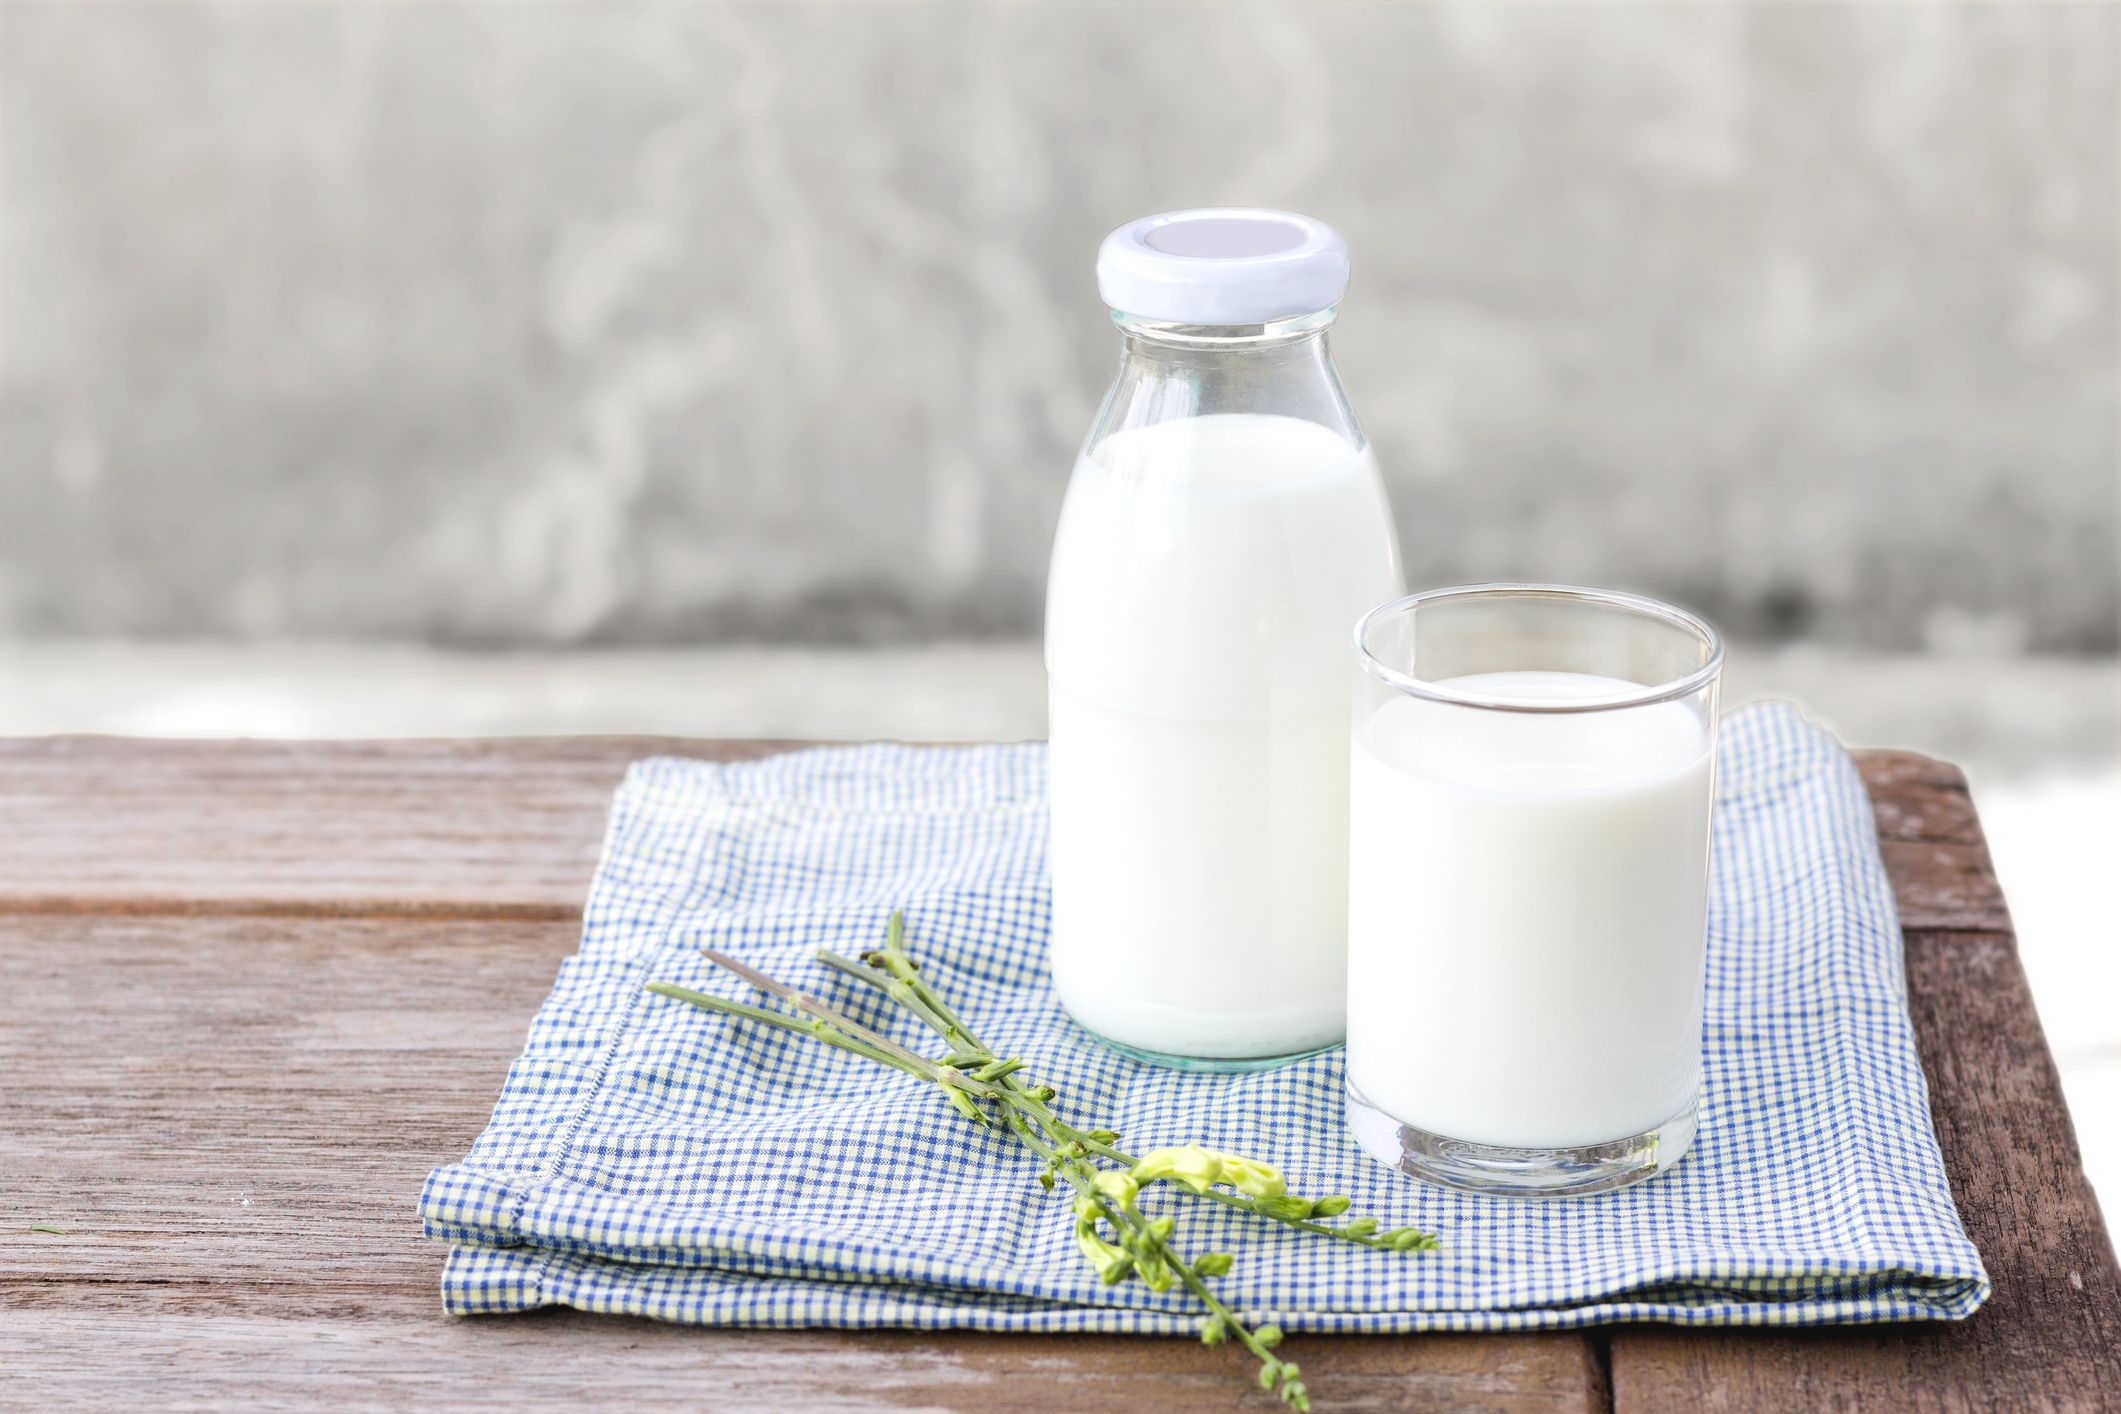 Goat Milk Nutrition - Health Benefits of Goat Milk